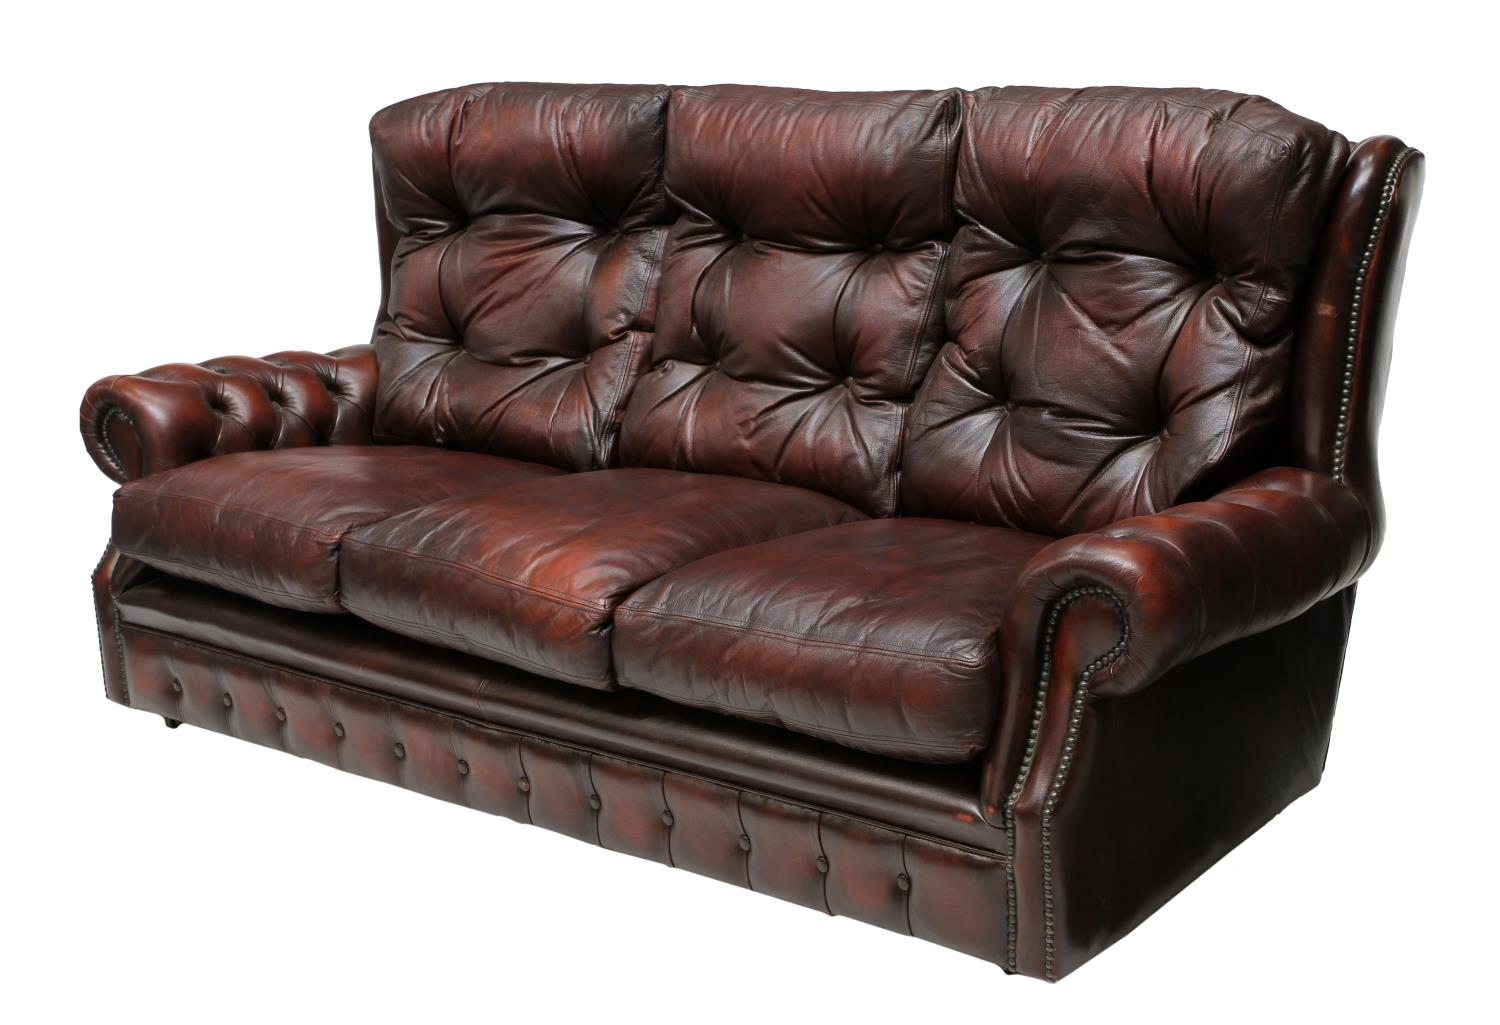 oxblood red chesterfield sofa difference between settee couch leather tufted fantastic